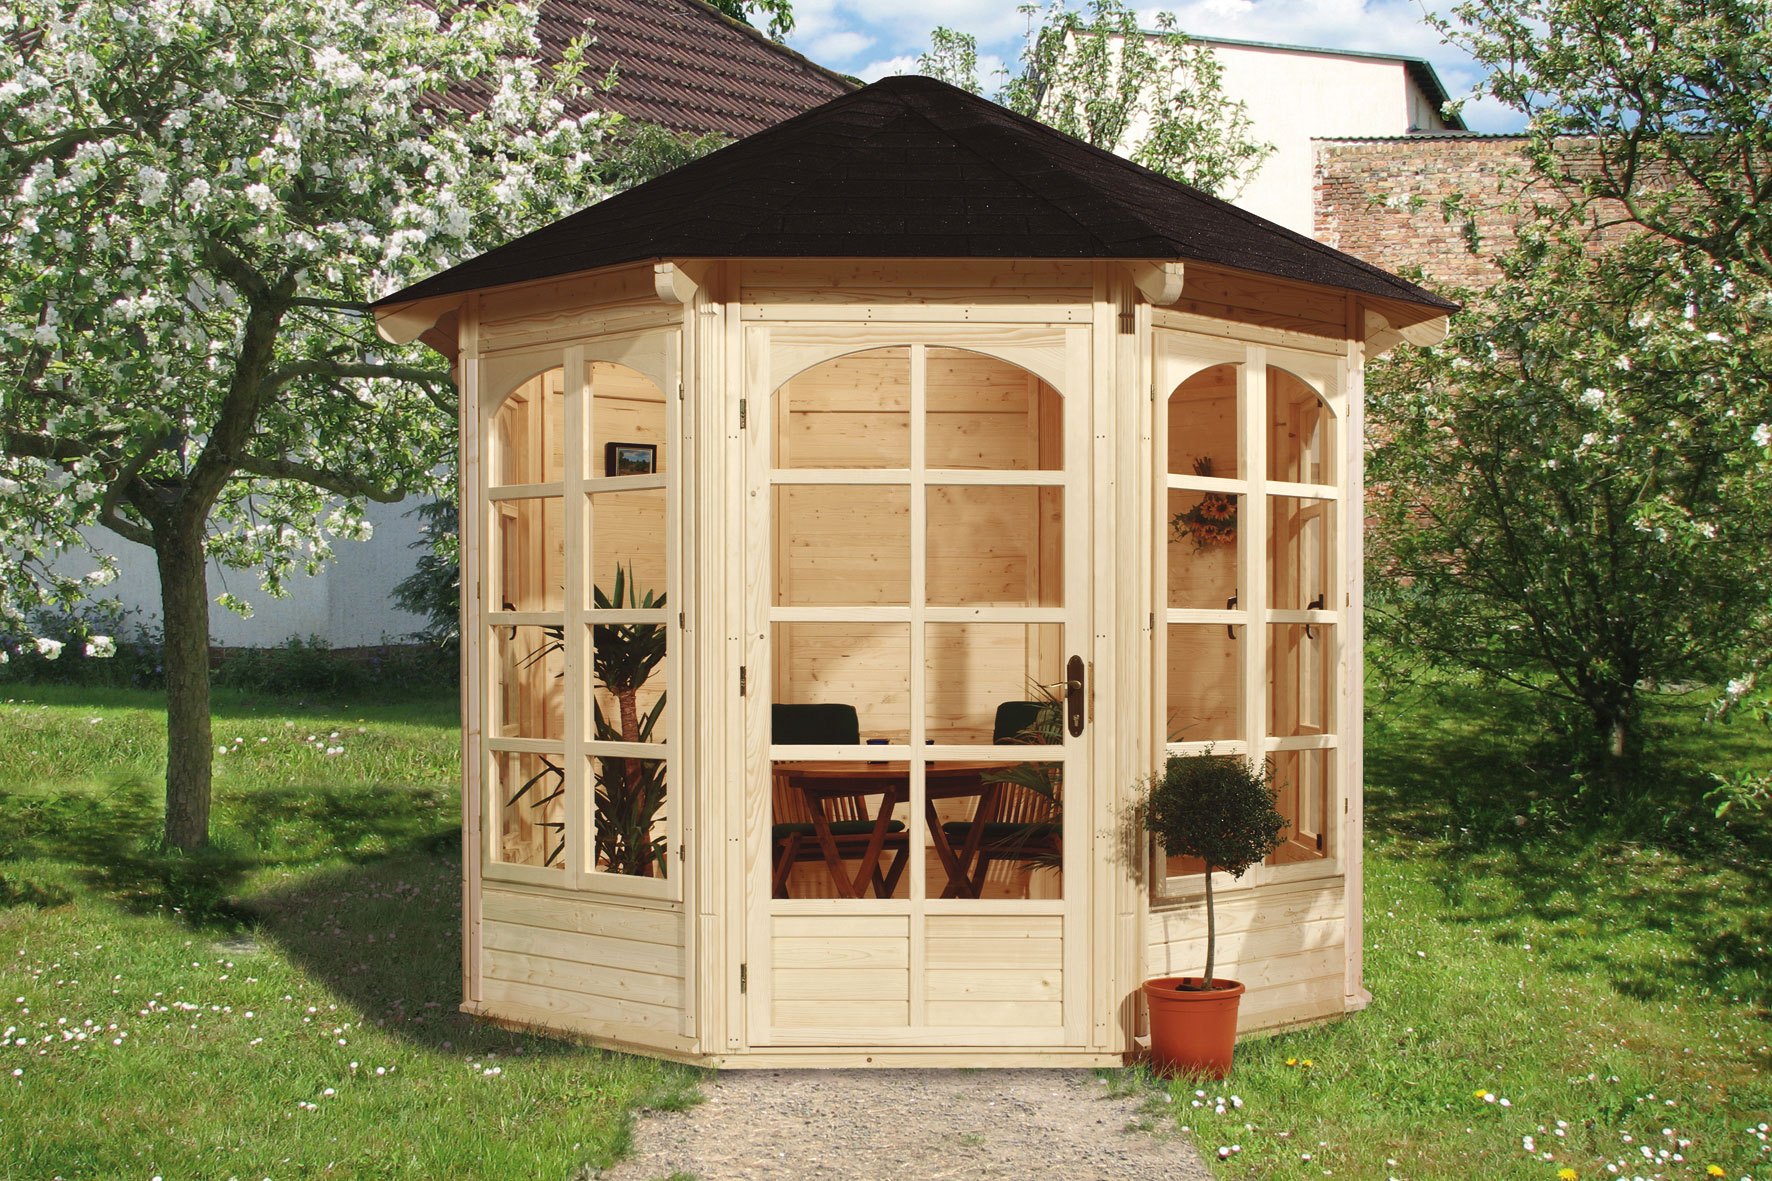 weka gartenlaube pavillon 234a natur 336x365cm 4 fenster. Black Bedroom Furniture Sets. Home Design Ideas